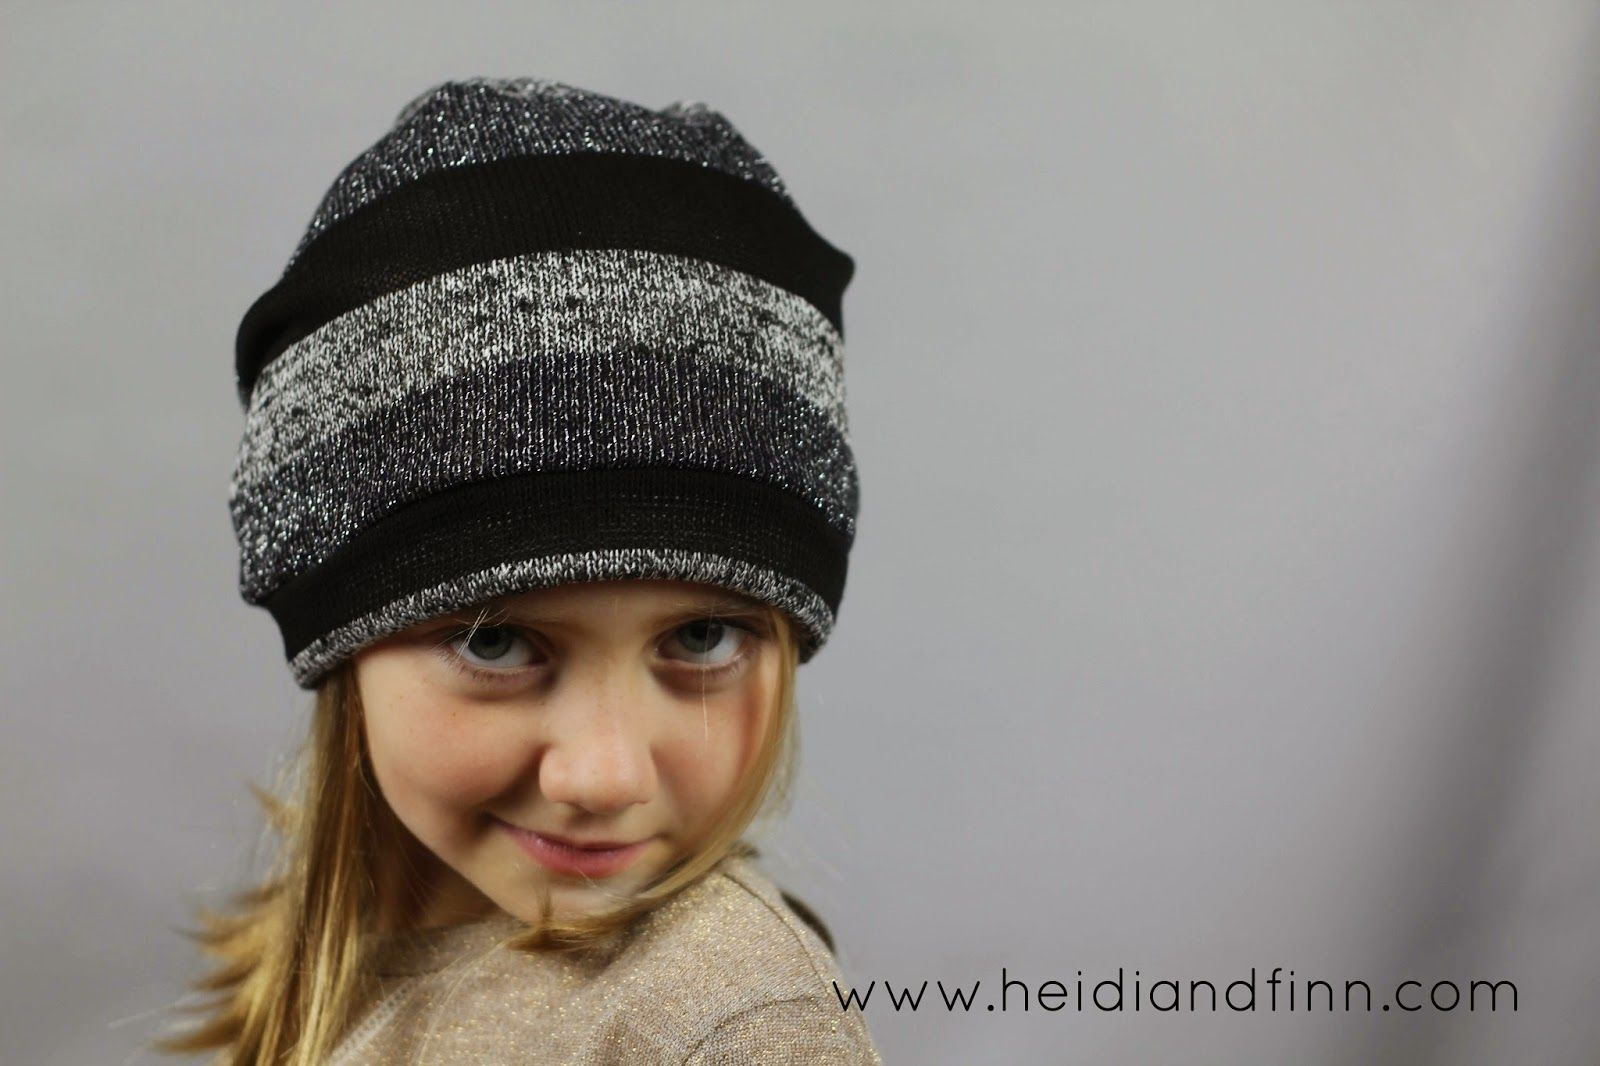 3982e056c37cd8 HeidiandFinn modern wears for kids  Slouchy Beanie hat - FREE pattern for kids  clothes week. Project 2 for kids clothes week - HATS! more specifically oh  so ...